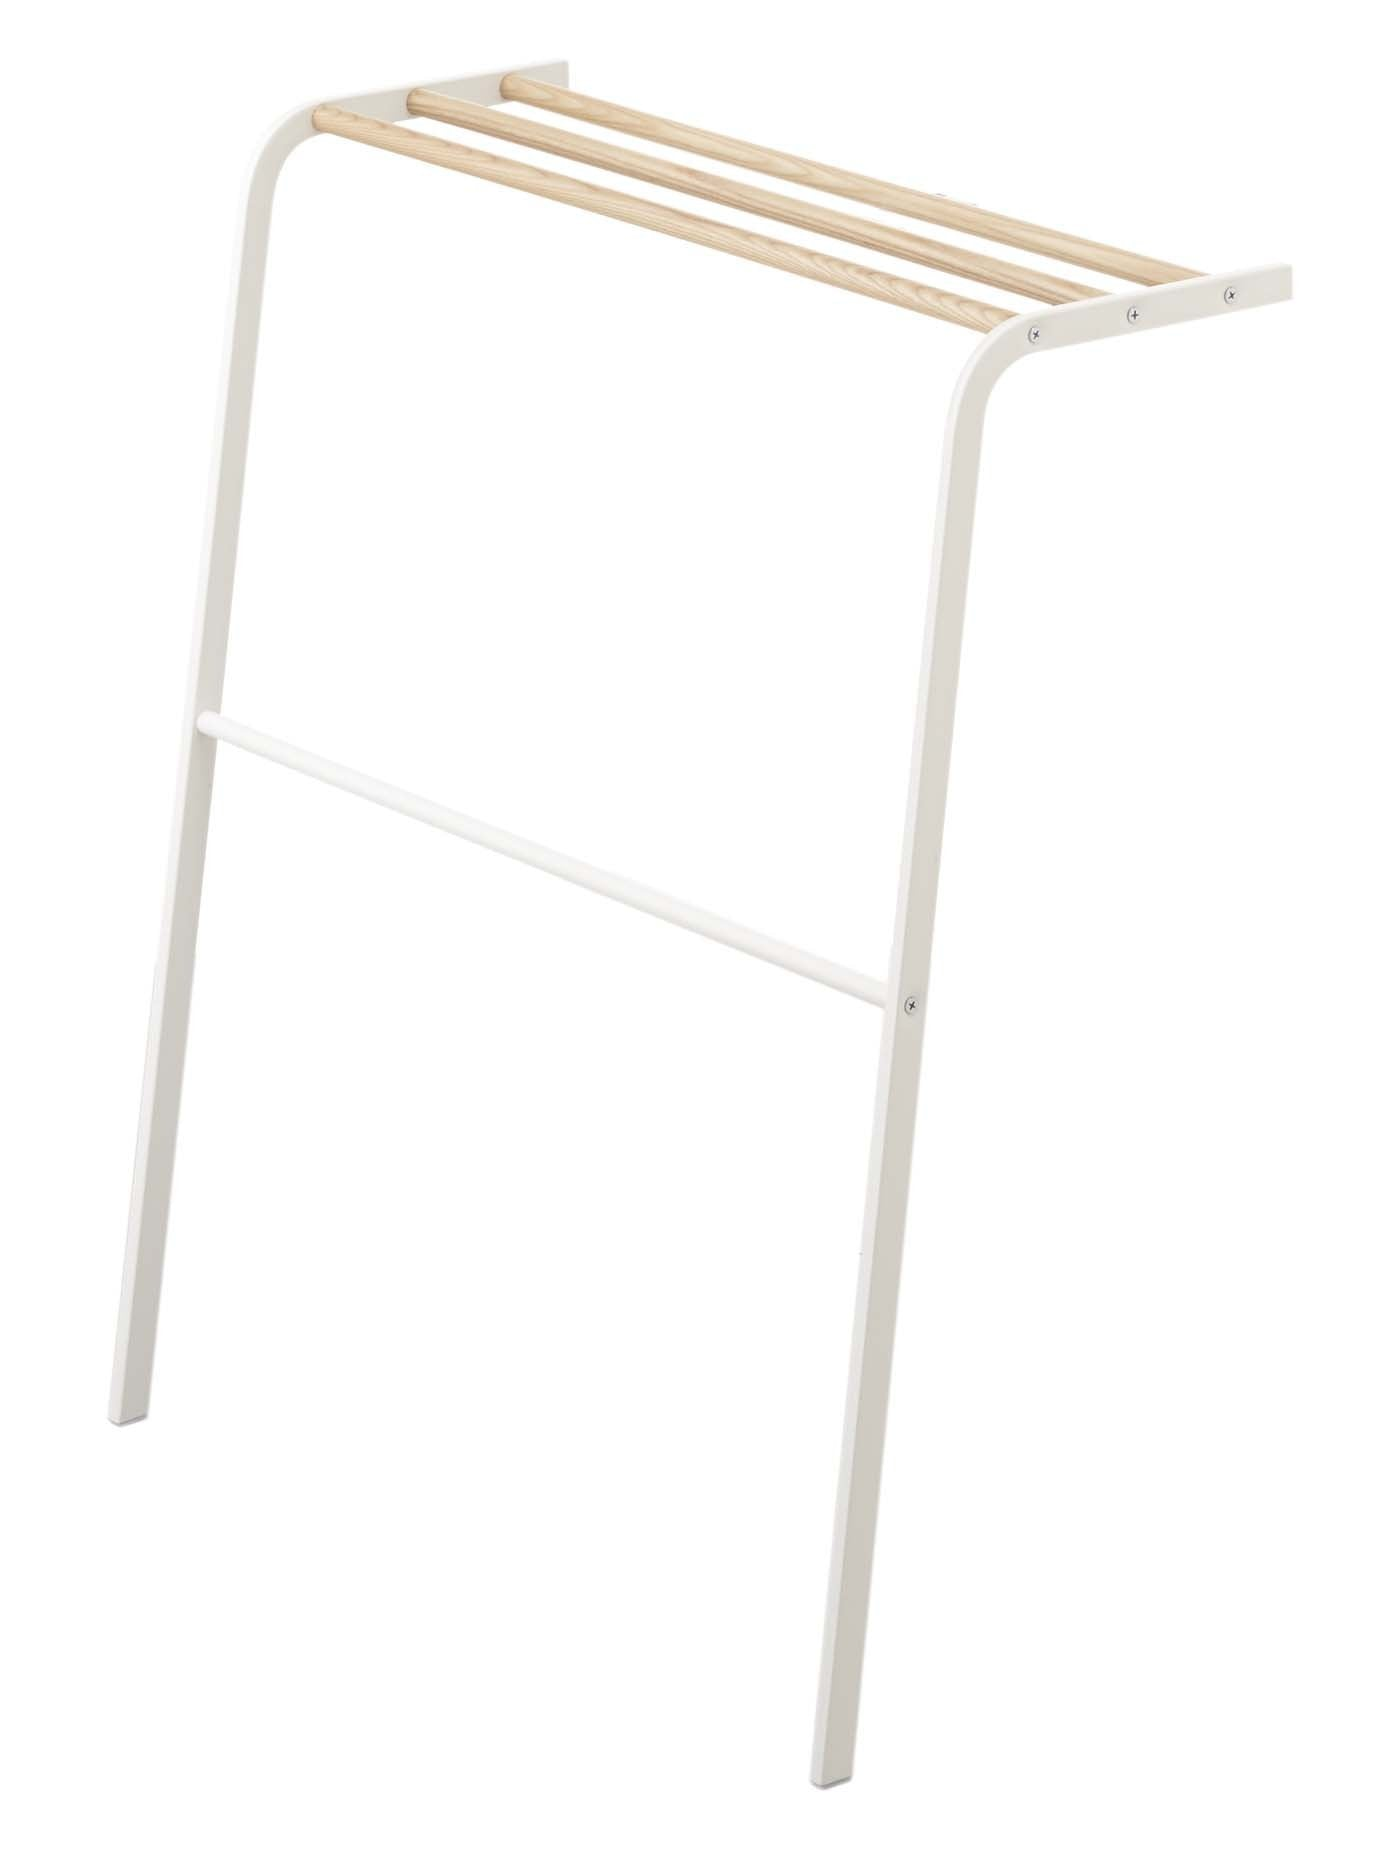 Stainless Steel & Wood Leaning Drying Towel Rack in White Finish